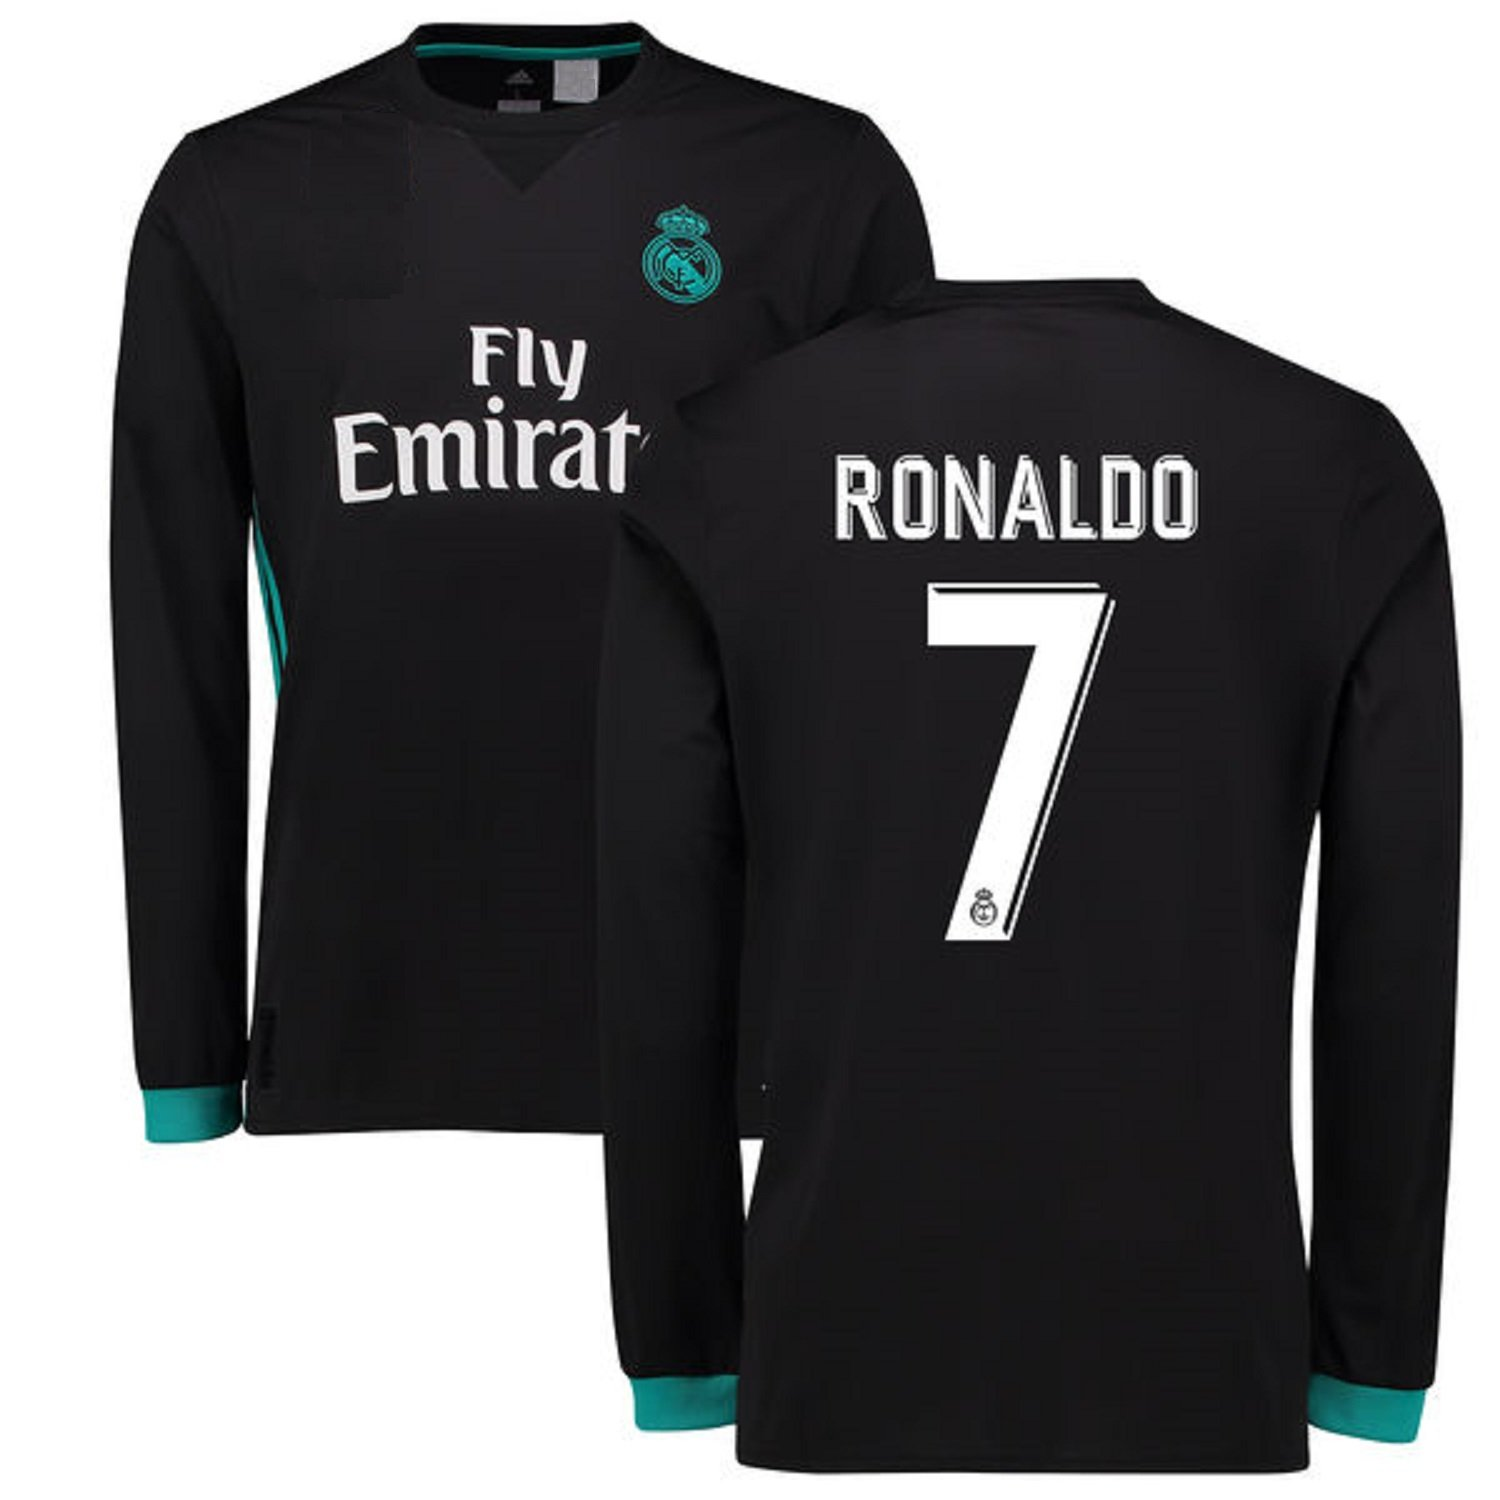 Real Madrid Away Ronaldo Kids  7 Soccer Kit Jersey and Shorts All Youth  Sizes RAMFC larger image 2126a0acf